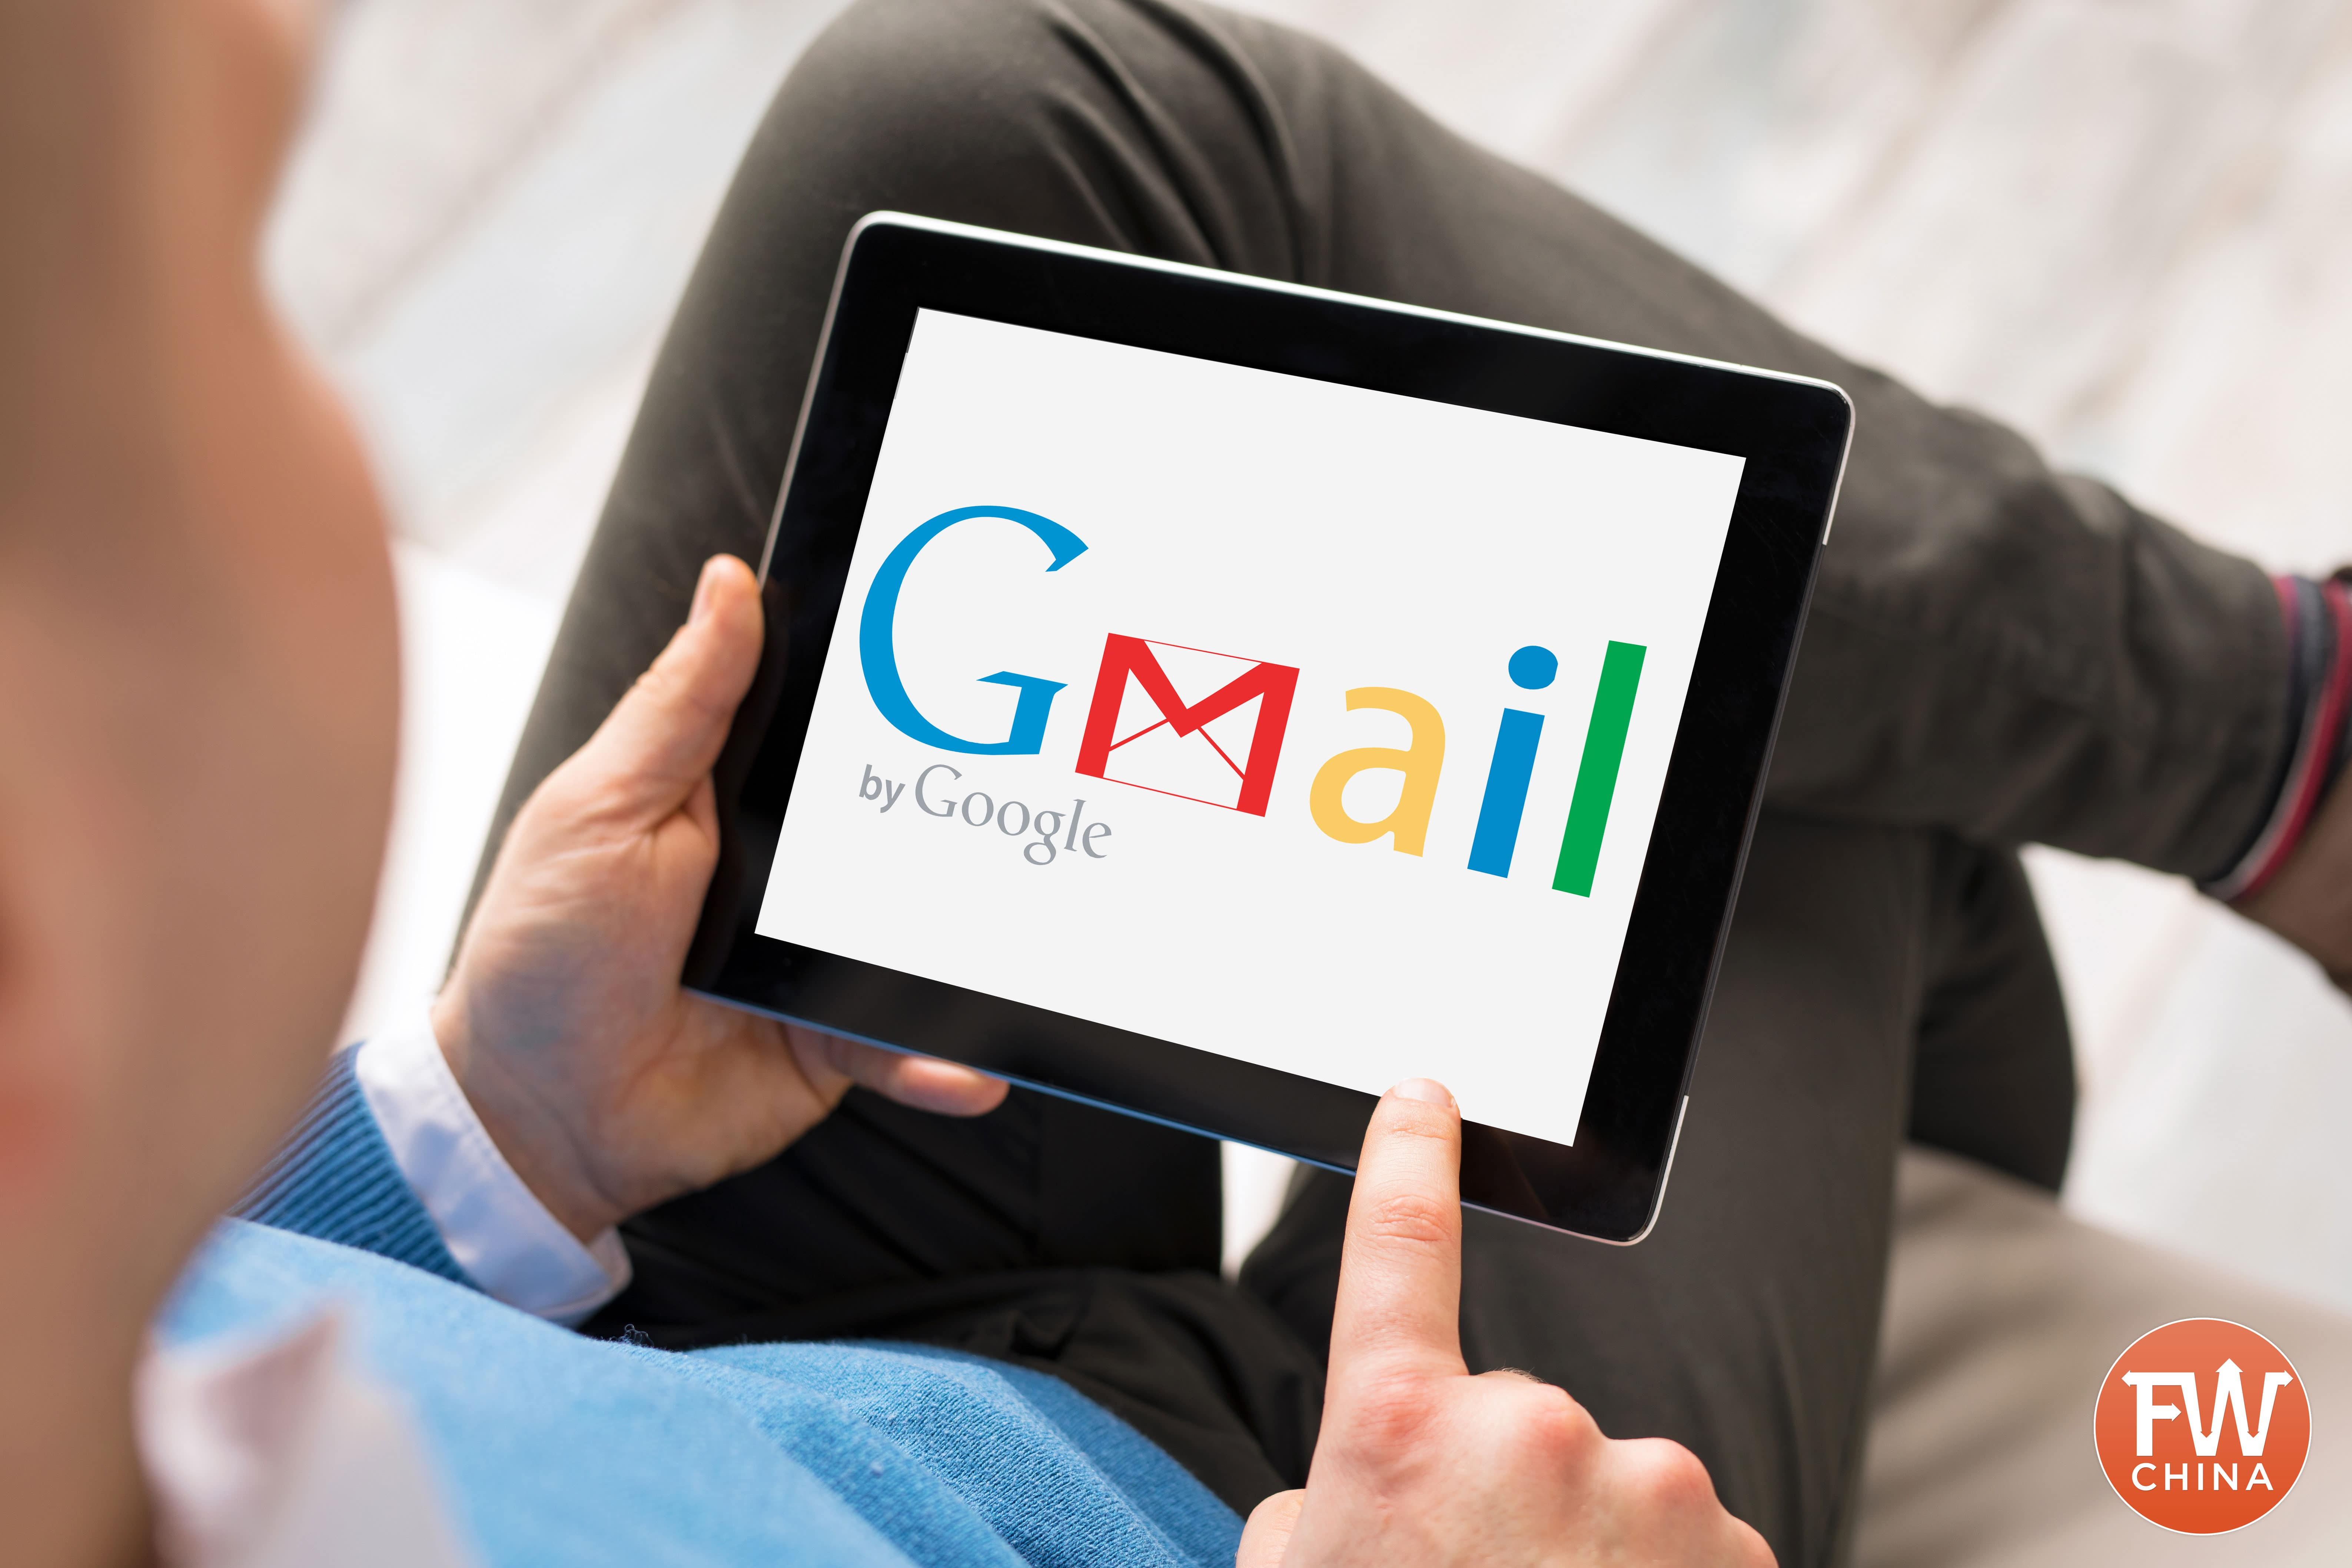 How to Use Gmail in China